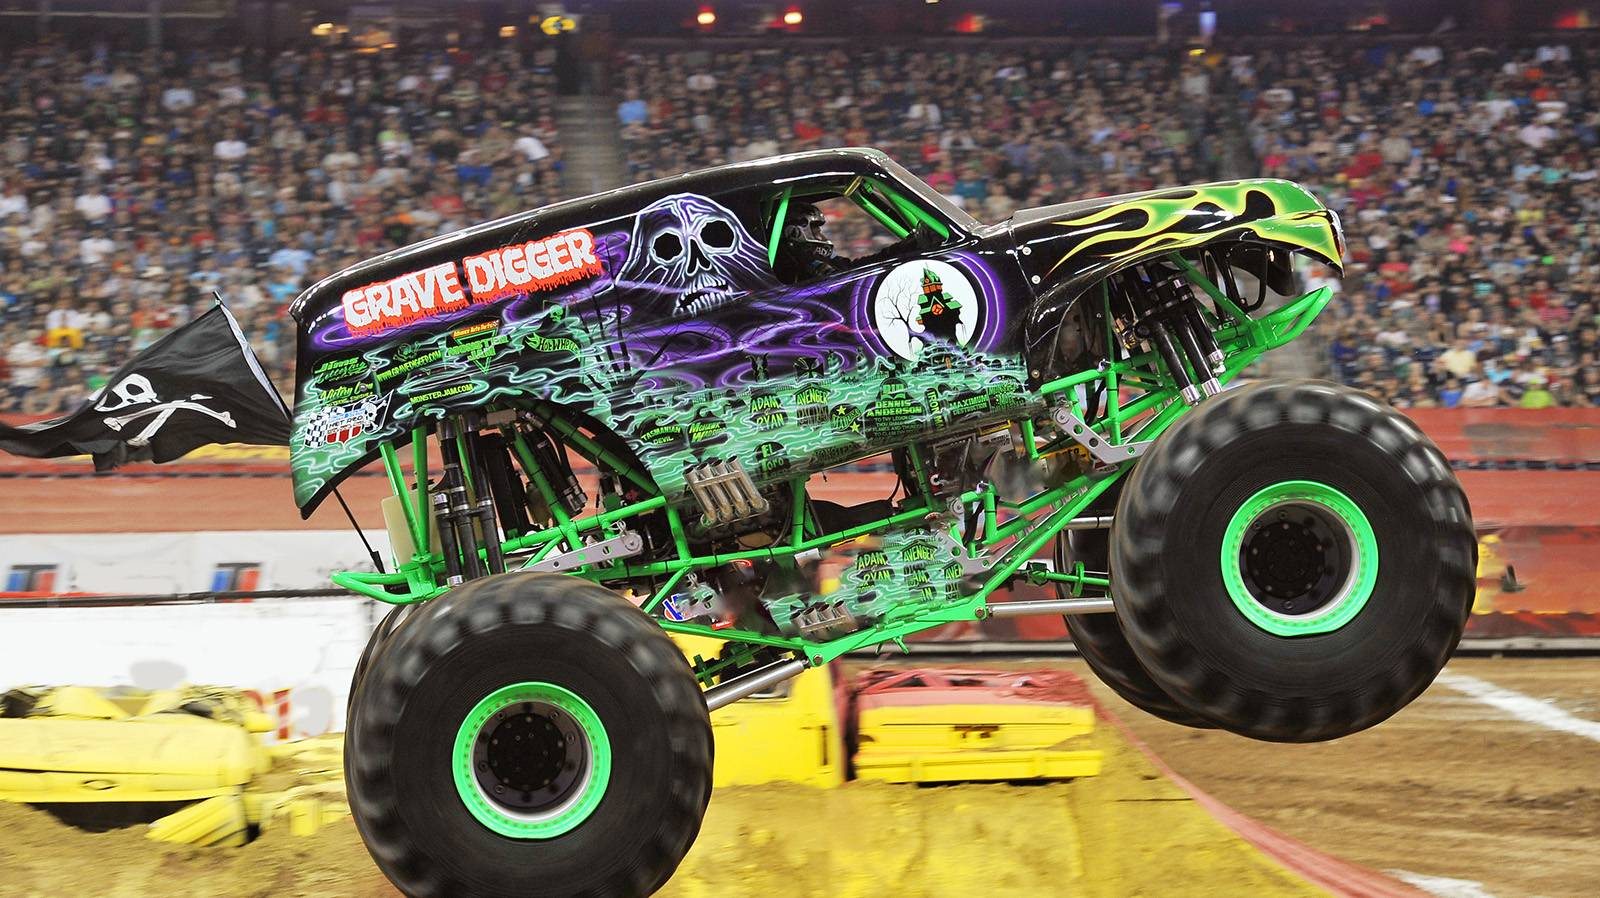 Monster Jam (Rescheduled from 3/14, 7/25)